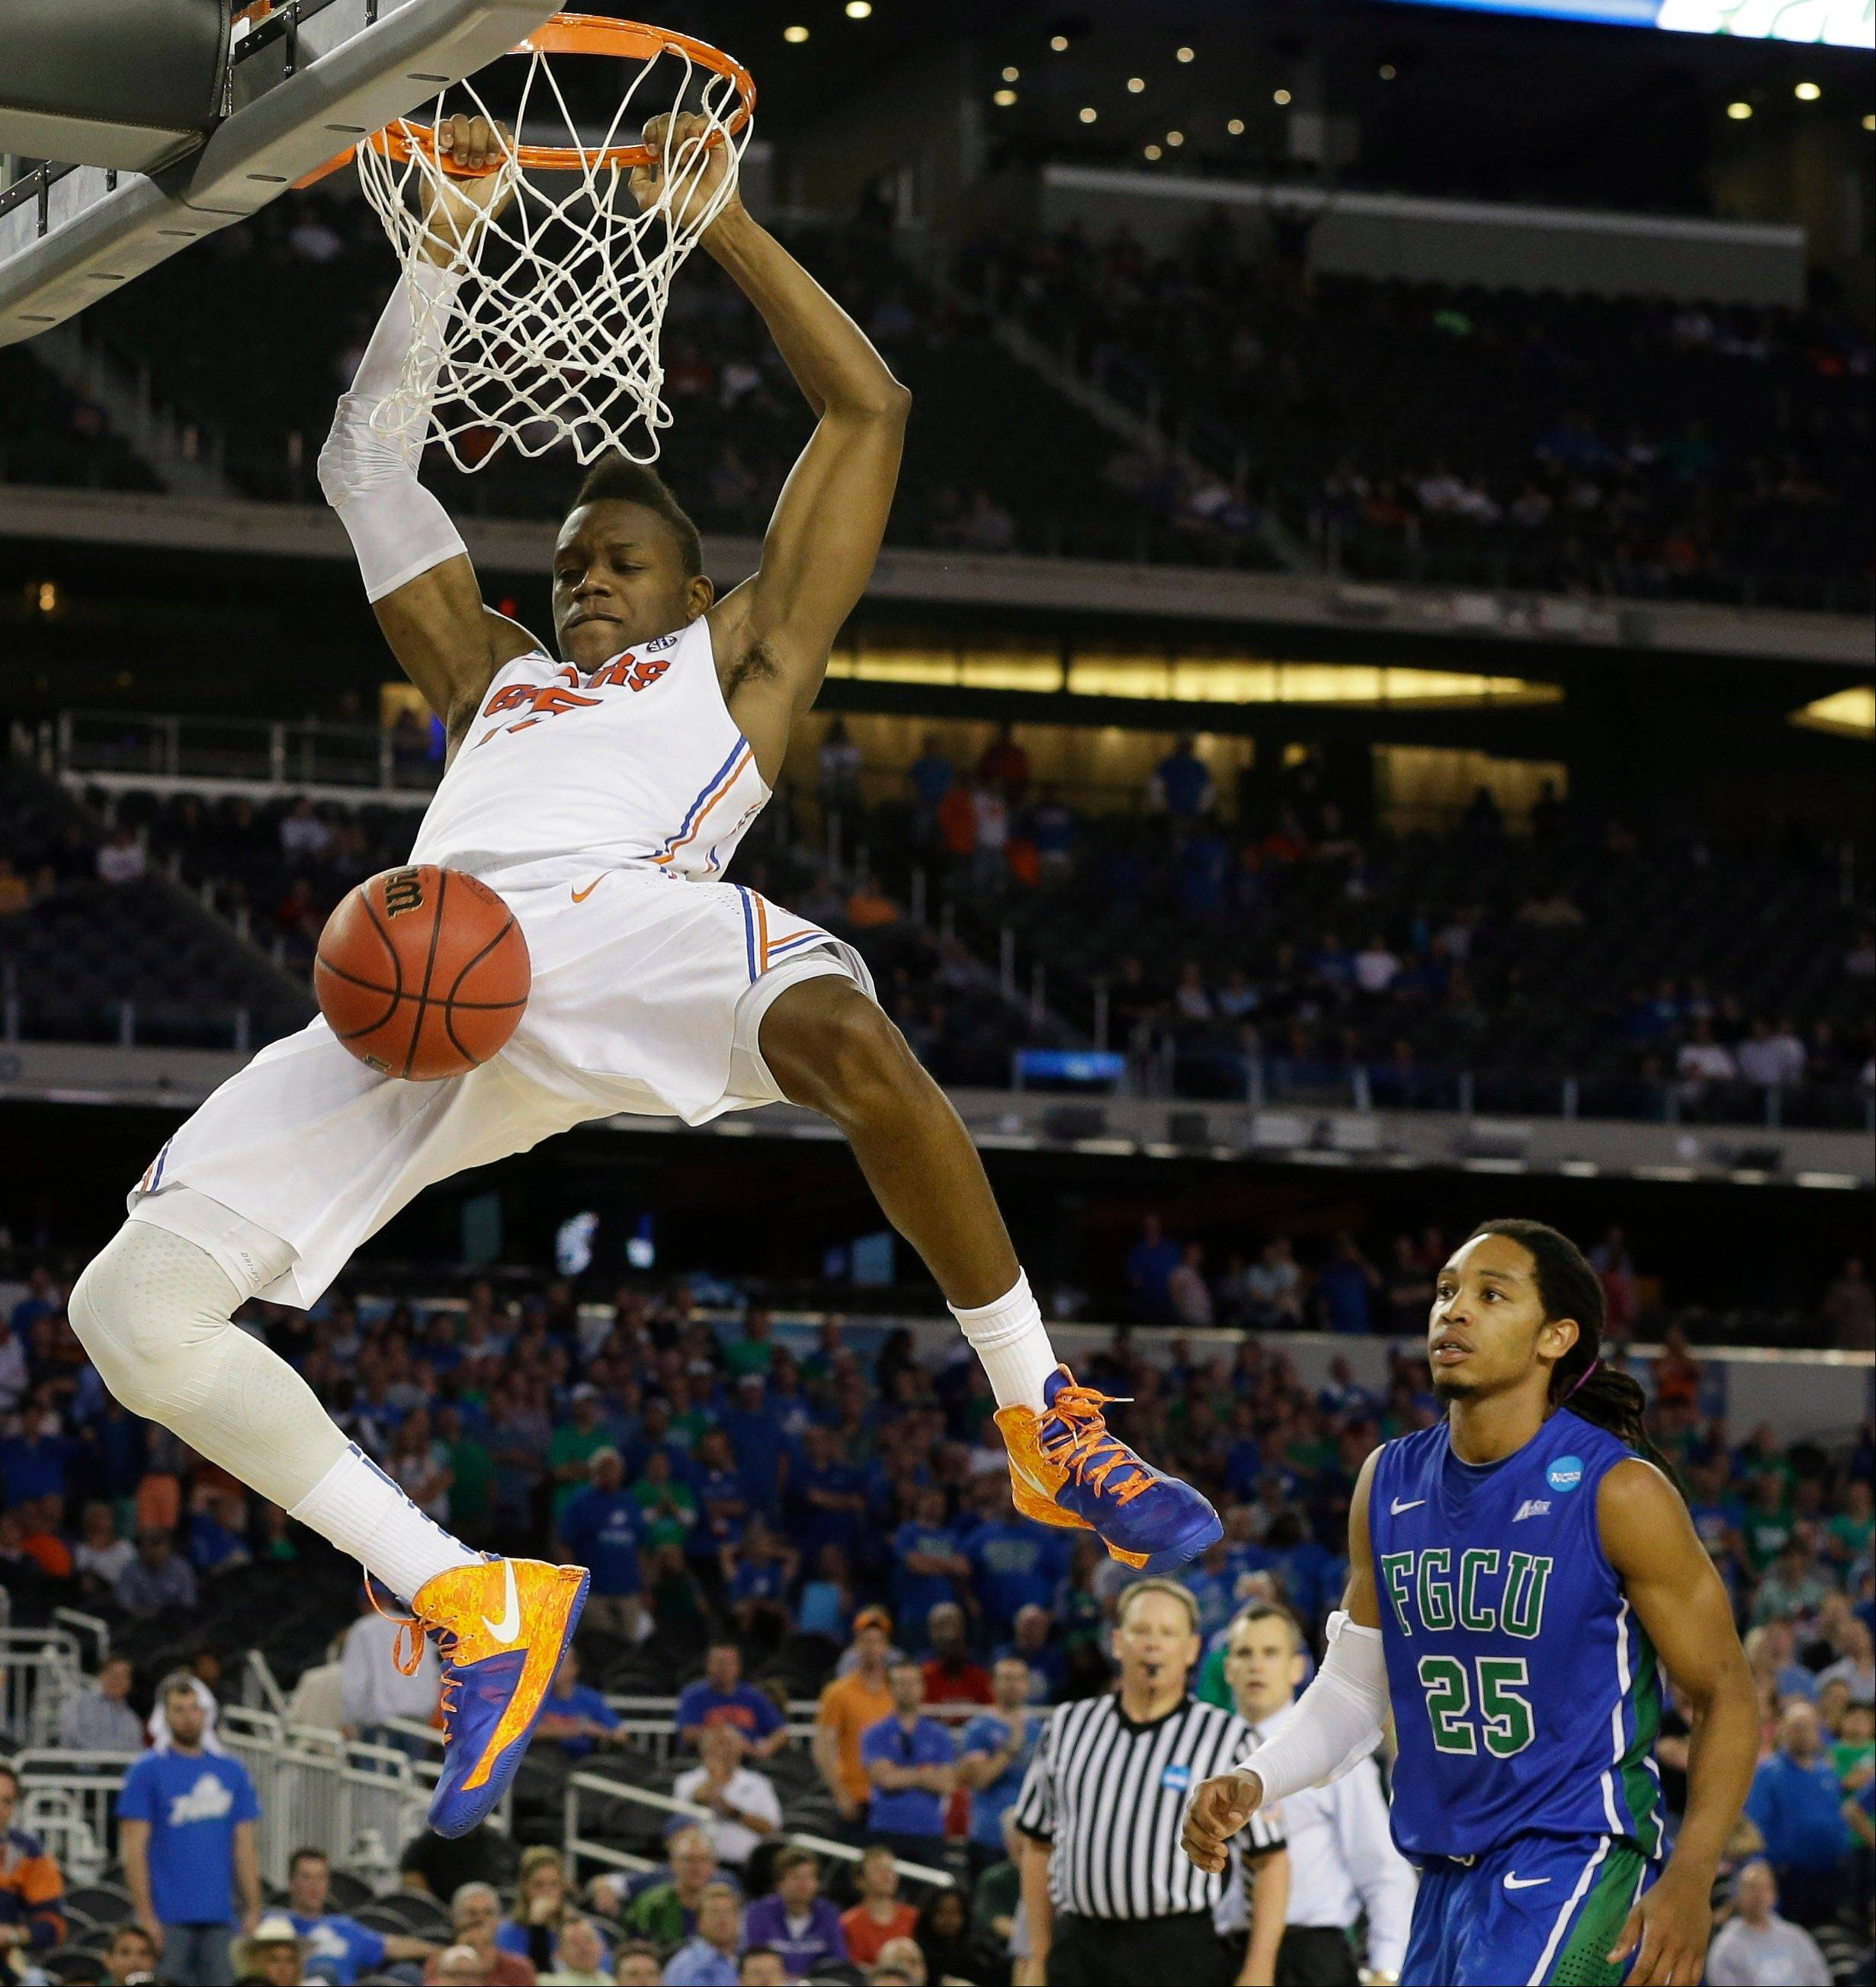 Florida's Will Yeguete dunks against Florida Gulf Coast during the second half of a regional semifinal game in the NCAA college basketball tournament, Saturday, March 30, 2013, in Arlington, Texas. (AP Photo/Tony Gutierrez)